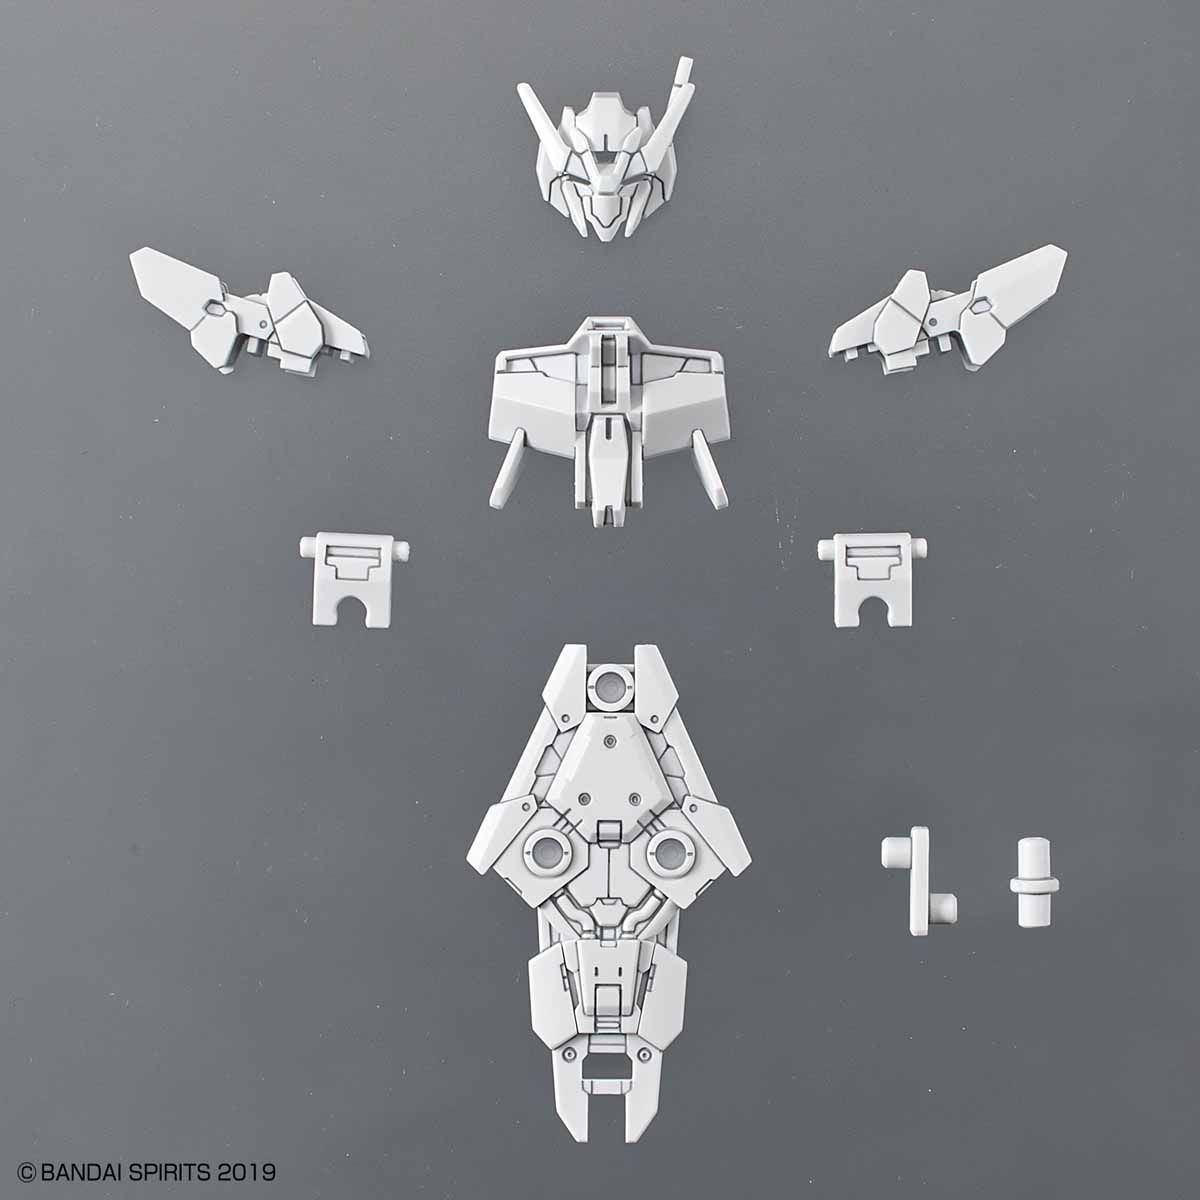 30 Minutes Missions(30MM) 30 Minutes Missions(30MM) 1/144 指揮官機用オプションアーマー[アルト用/ホワイト] 4573102580993 5058099